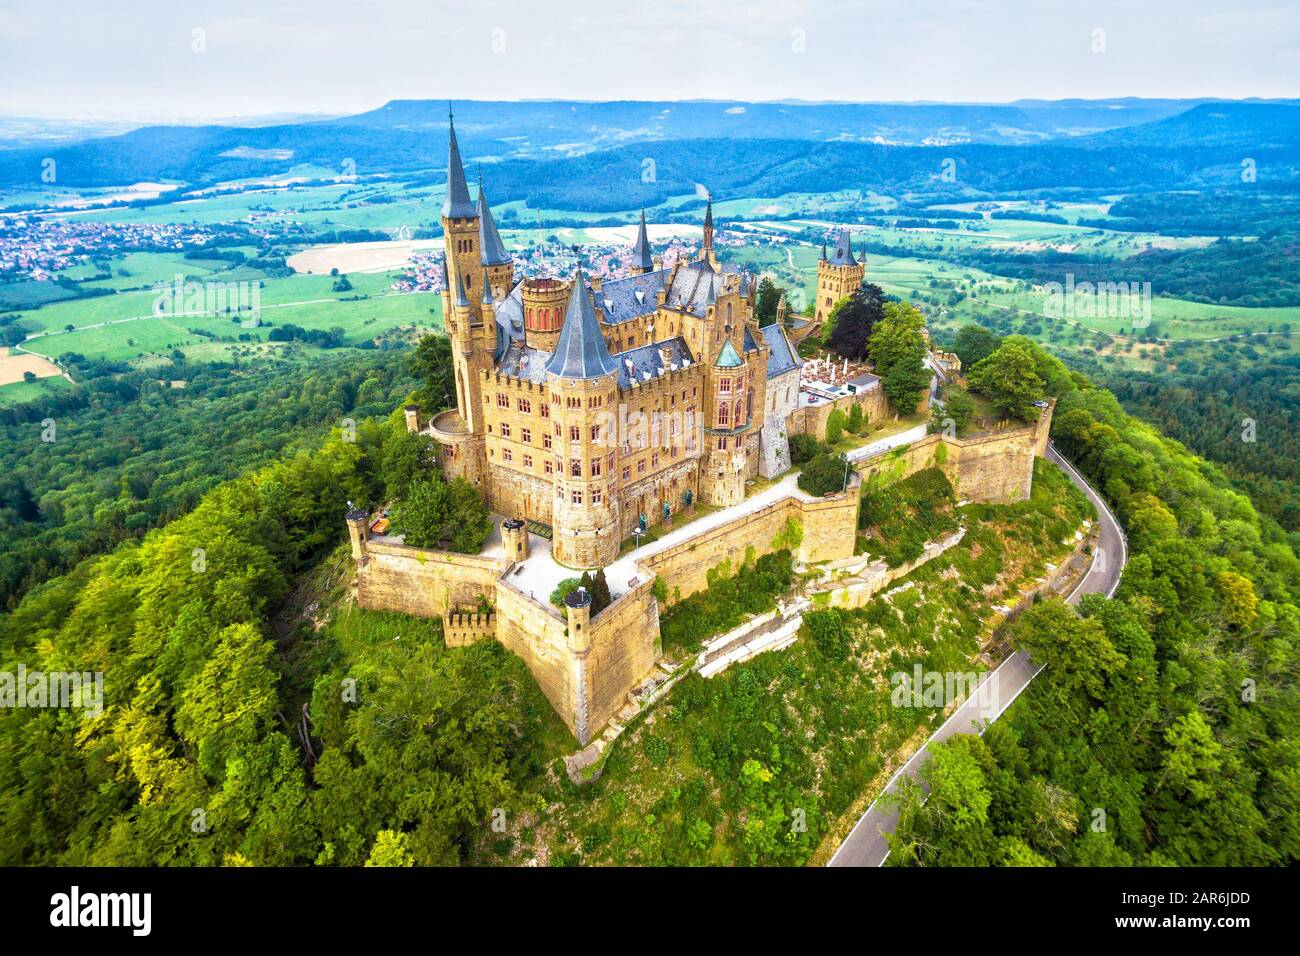 Hohenzollern Castle On Mountain Germany This Castle Is A Famous Landmark In Stuttgart Vicinity Aerial Panoramic View Of Burg Hohenzollern In Summer Stock Photo Alamy